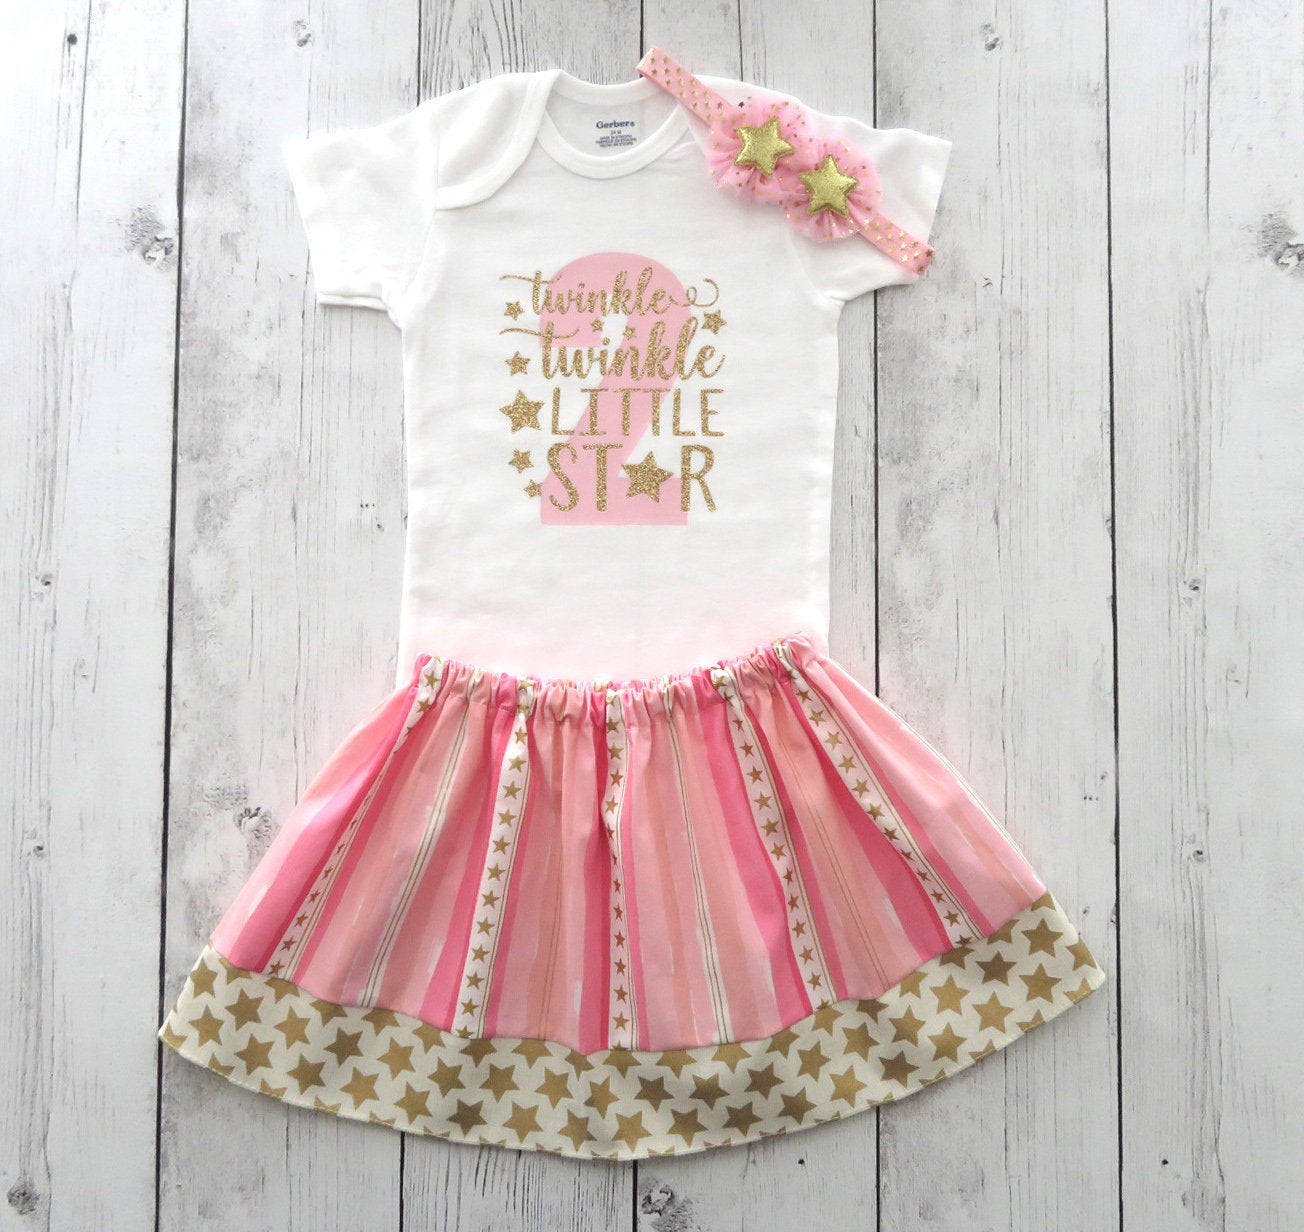 Twinkle Twinkle Little Star Second Birthday Outfit in Pink and Gold - girl 2nd birthday outfit, pink gold star birthday outfit, twinkle